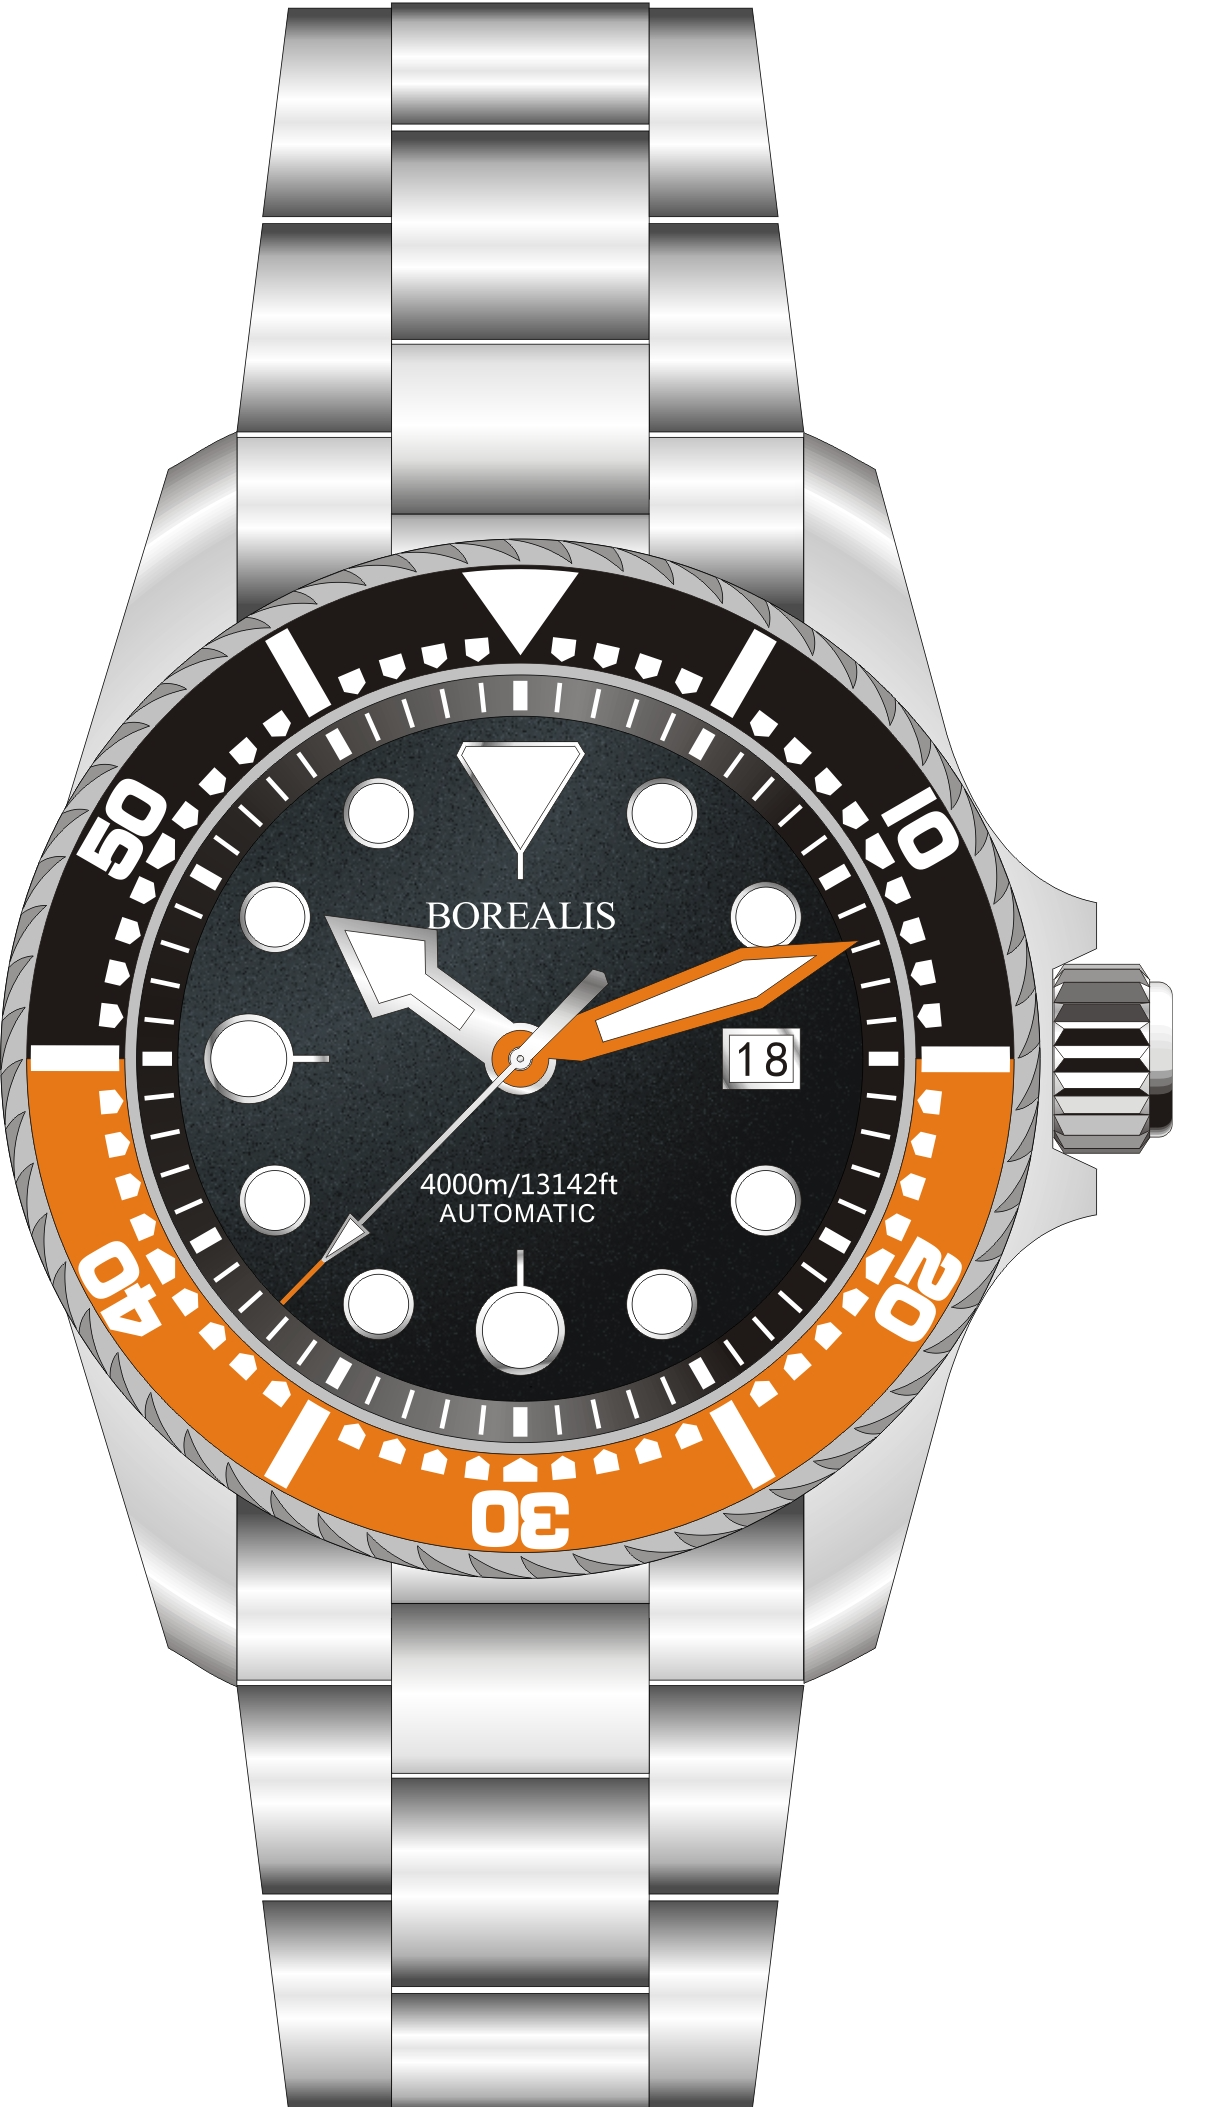 Borealis Seafarer II Stainless Steel Black Orange BGW9 Sapphire Turbine Style Grip Bezel 4000m Miyota 9015 Automatic Diver Watch